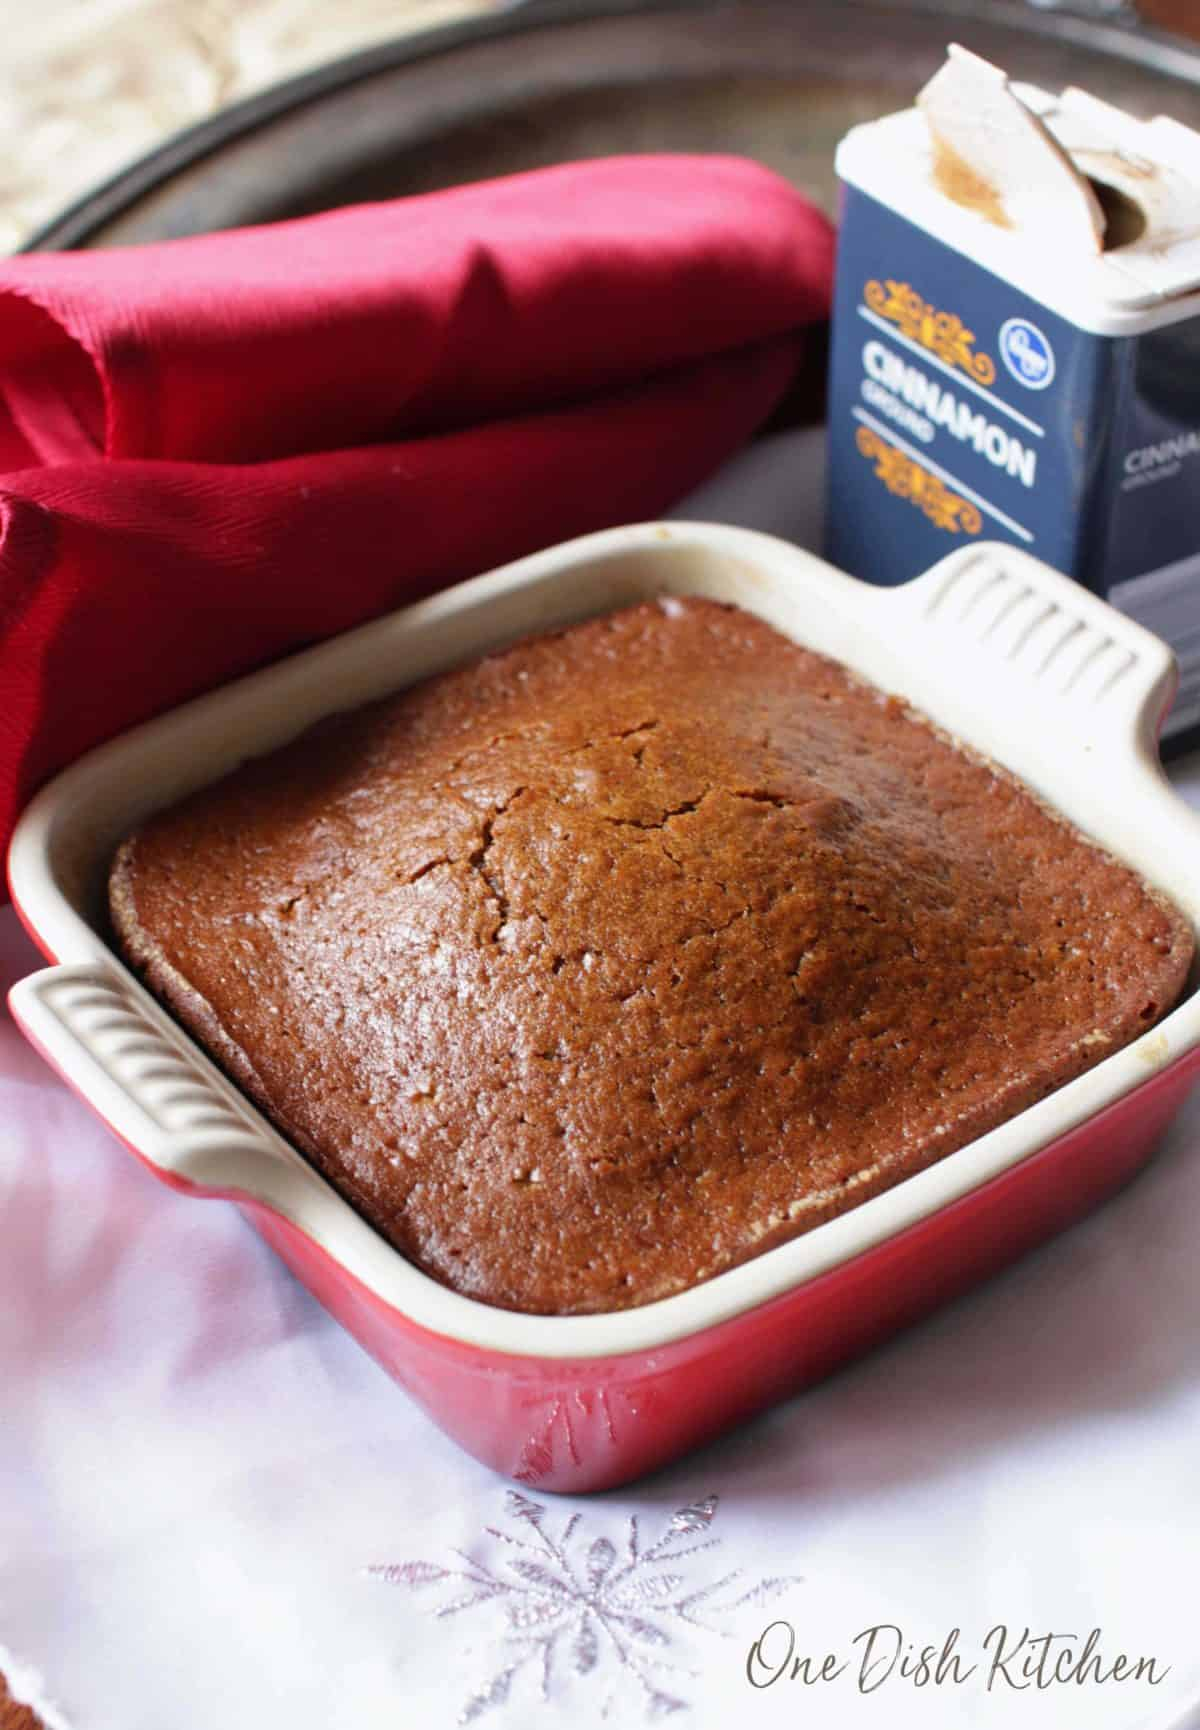 a small gingerbread cake in a red baking dish.